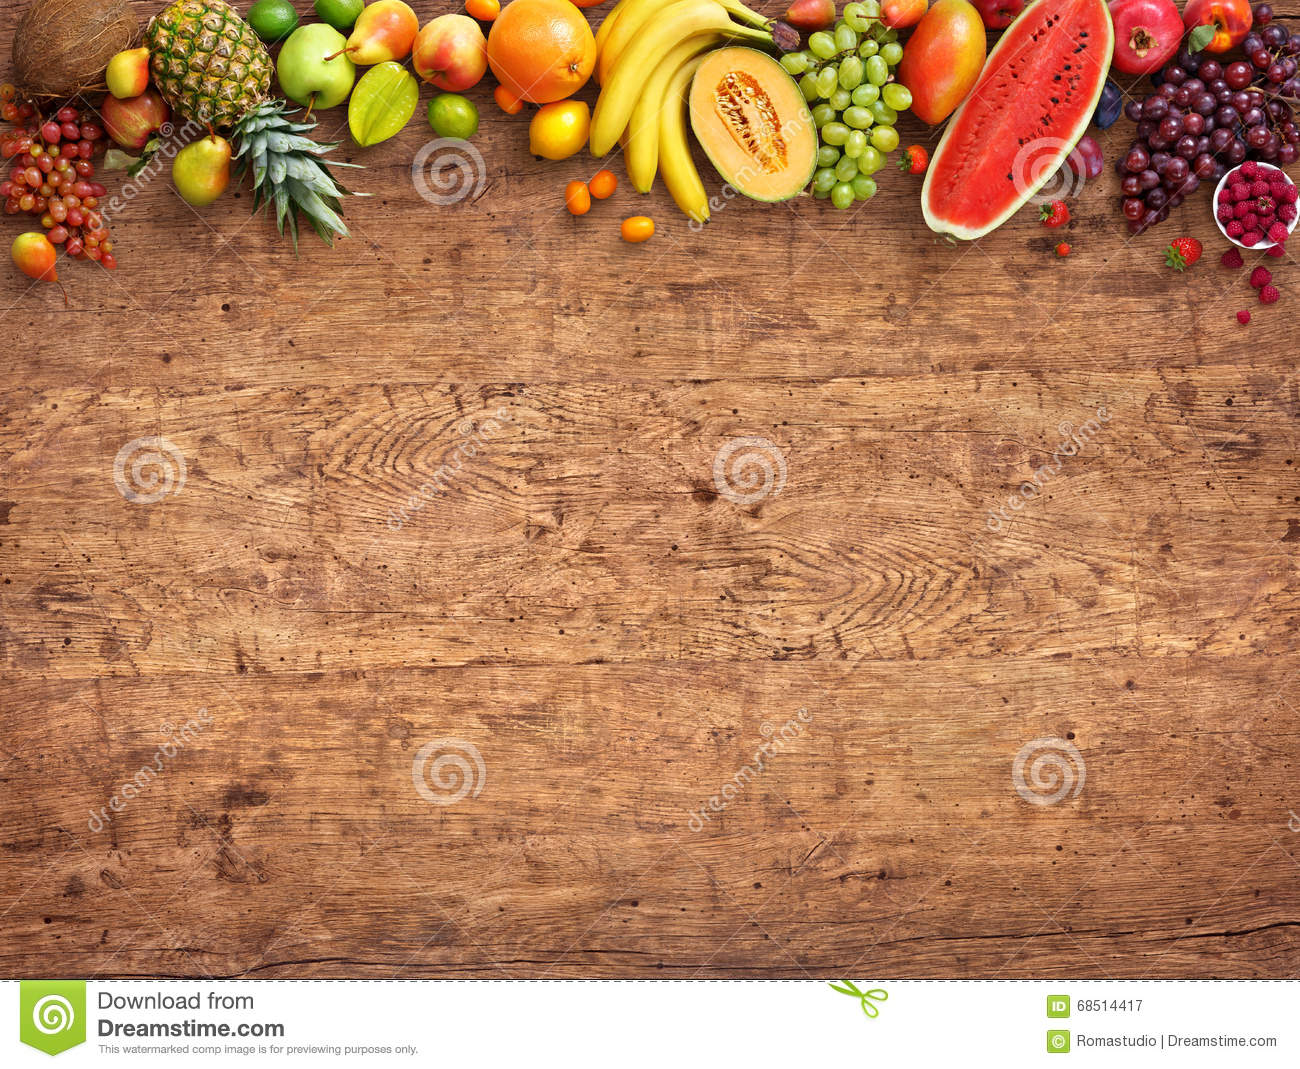 Healthy eating concept. Studio photo of different fruits.